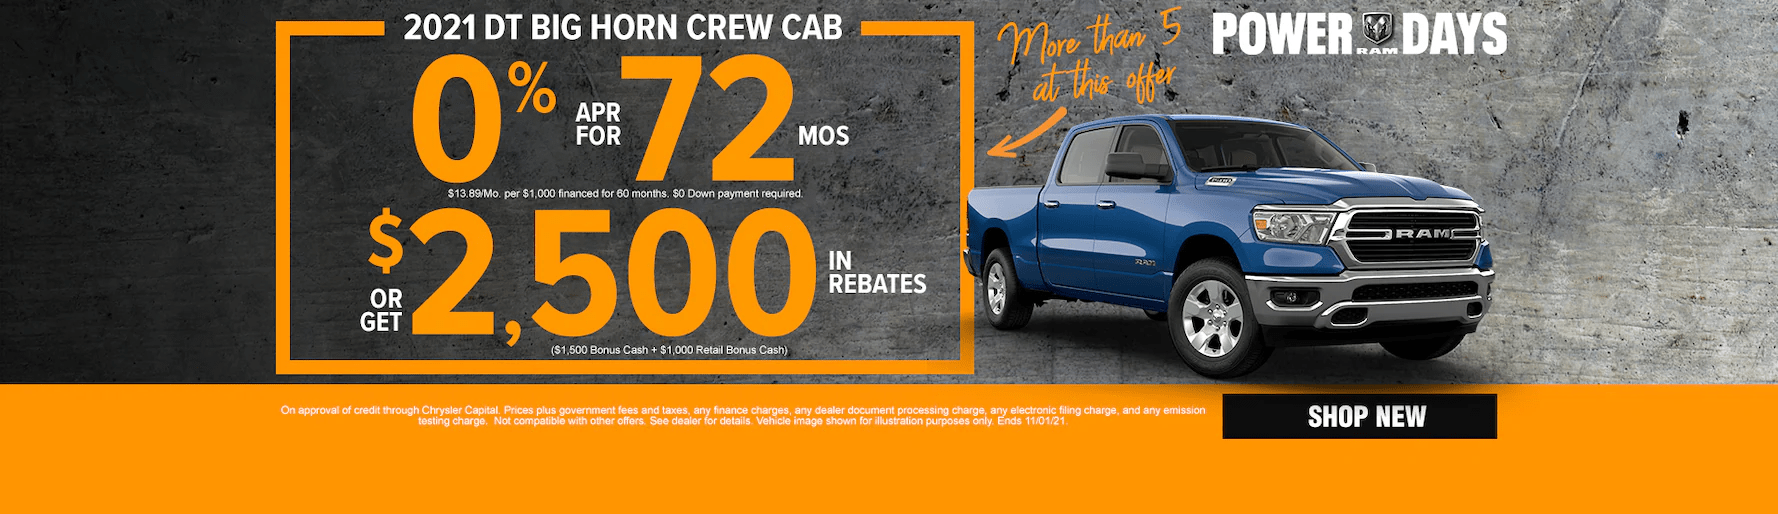 2021 big horn crew cab 0% apr for 72 months or get $2,500 in rebates